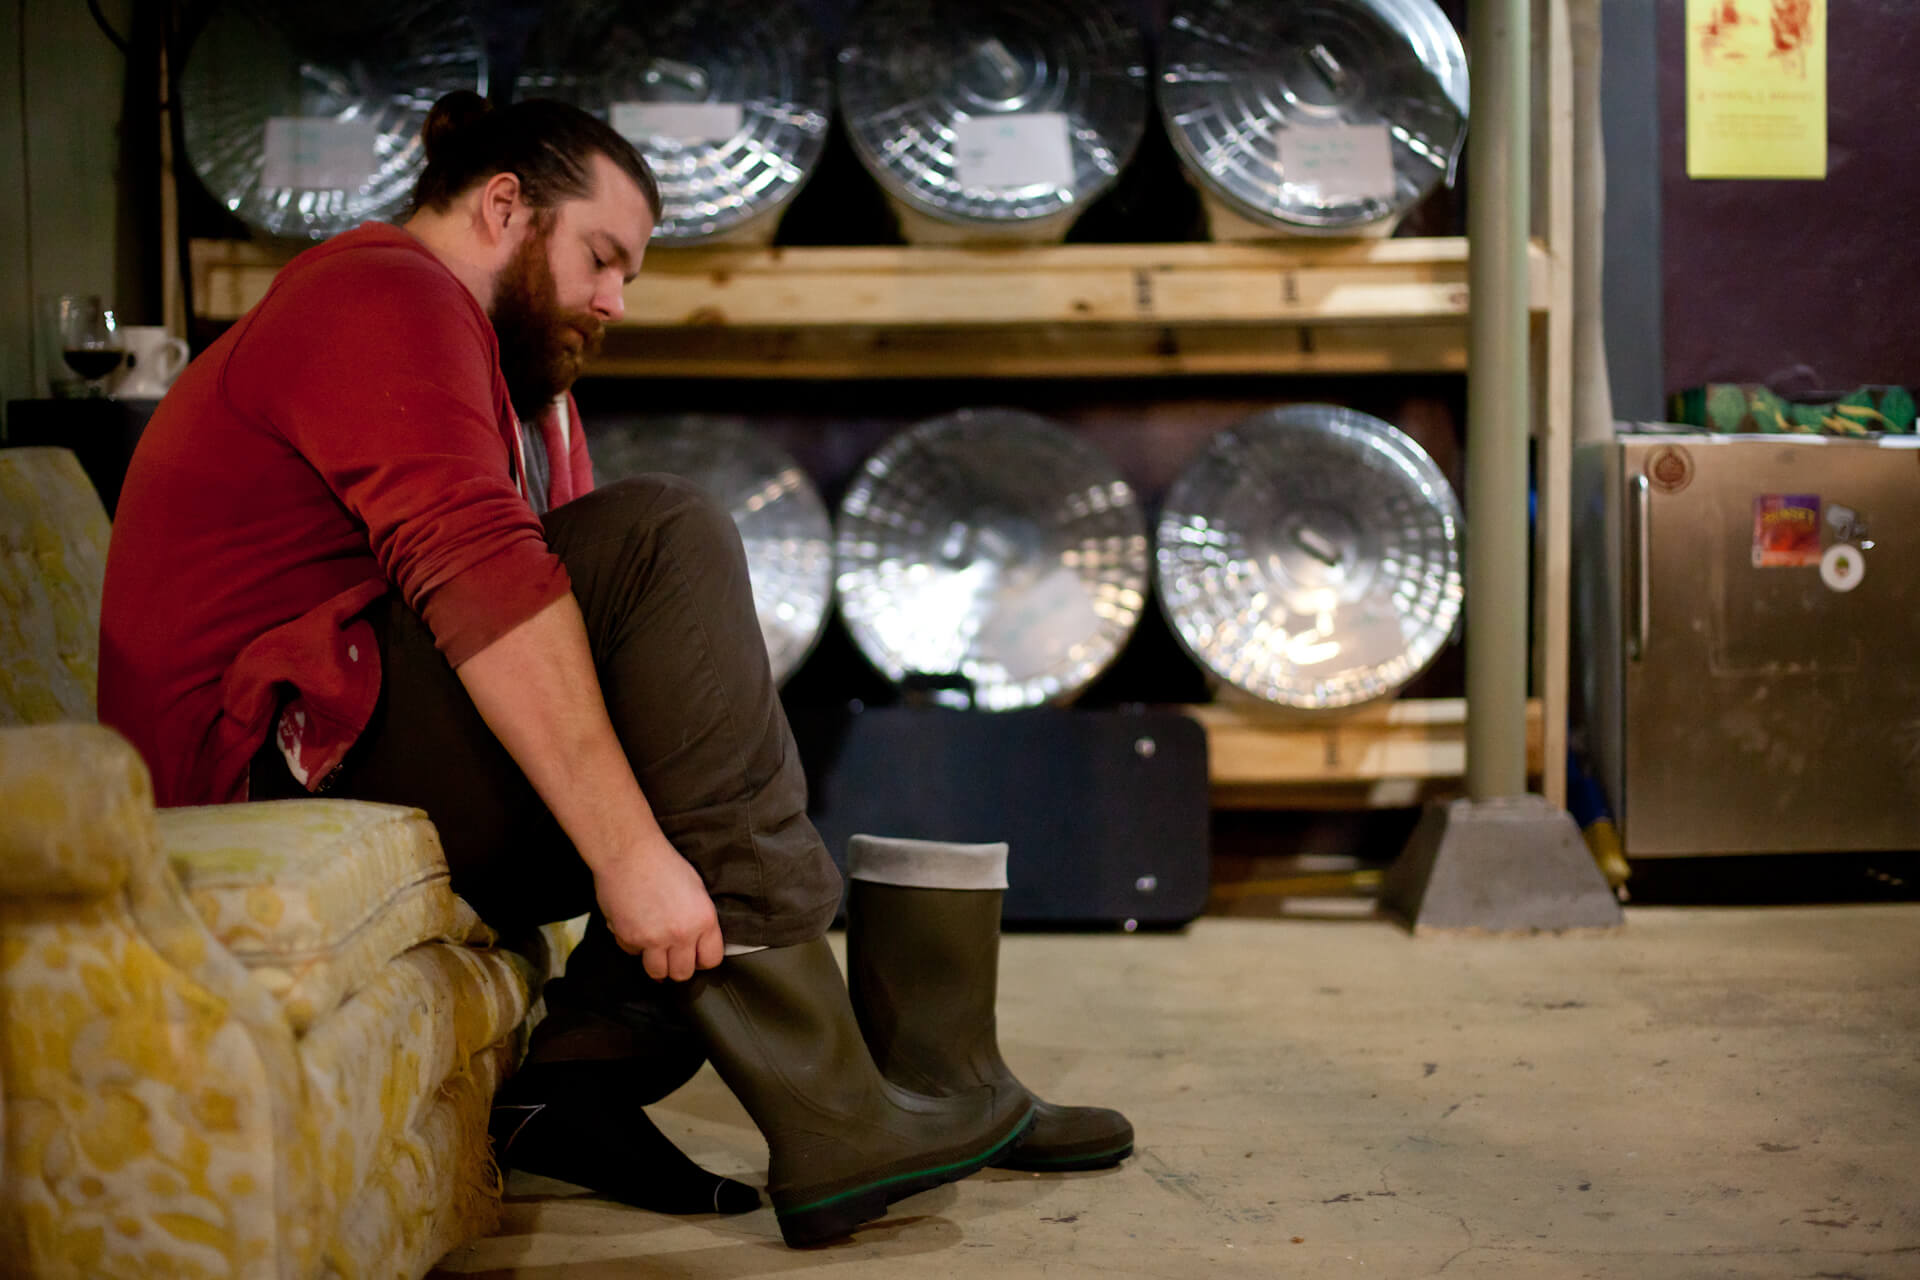 Ryan Verdon gets ready to start his day at Real Deal Brewing (located in the basement of The Raw Deal, Menomonie)